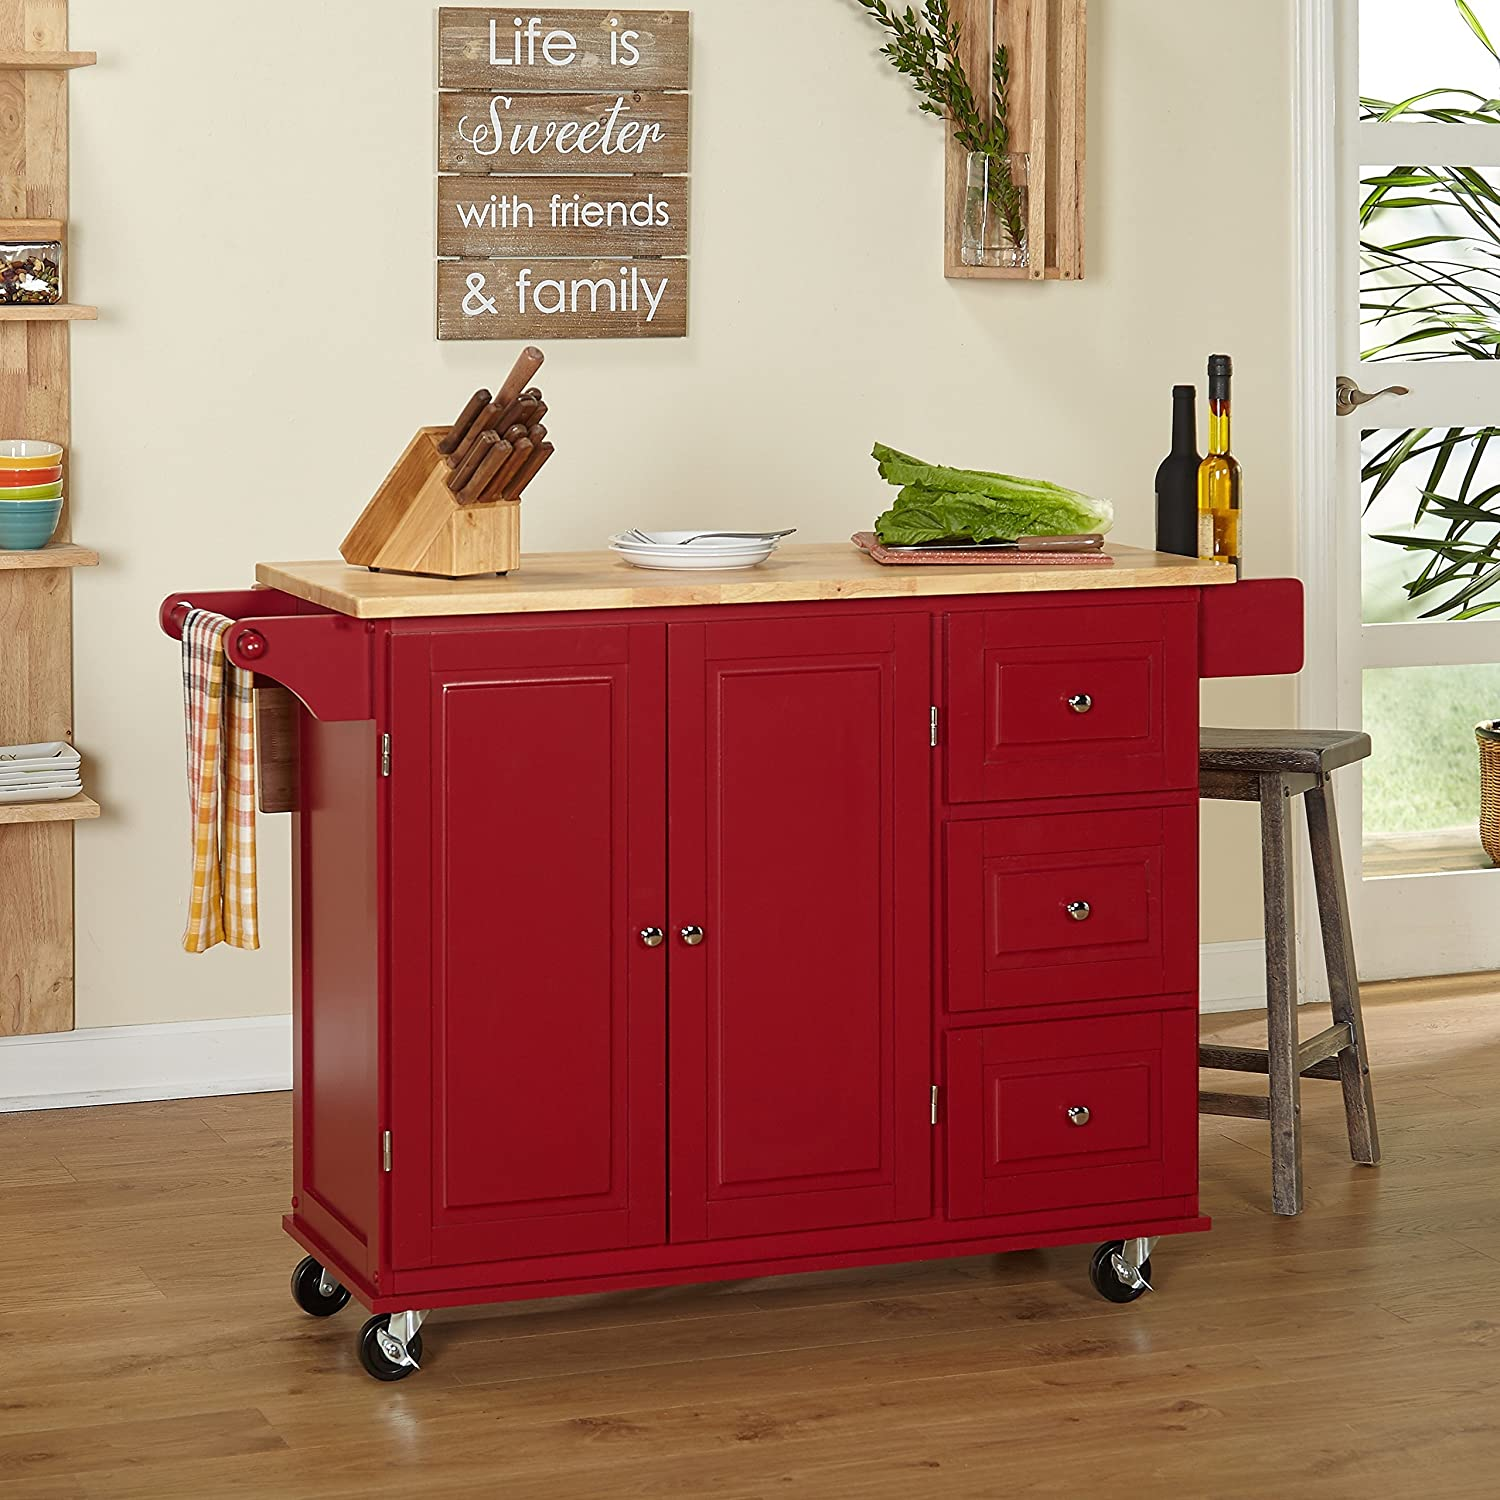 Set Up a Coffee Station Anywhere with a Kitchen Cart on Wheels with Storage